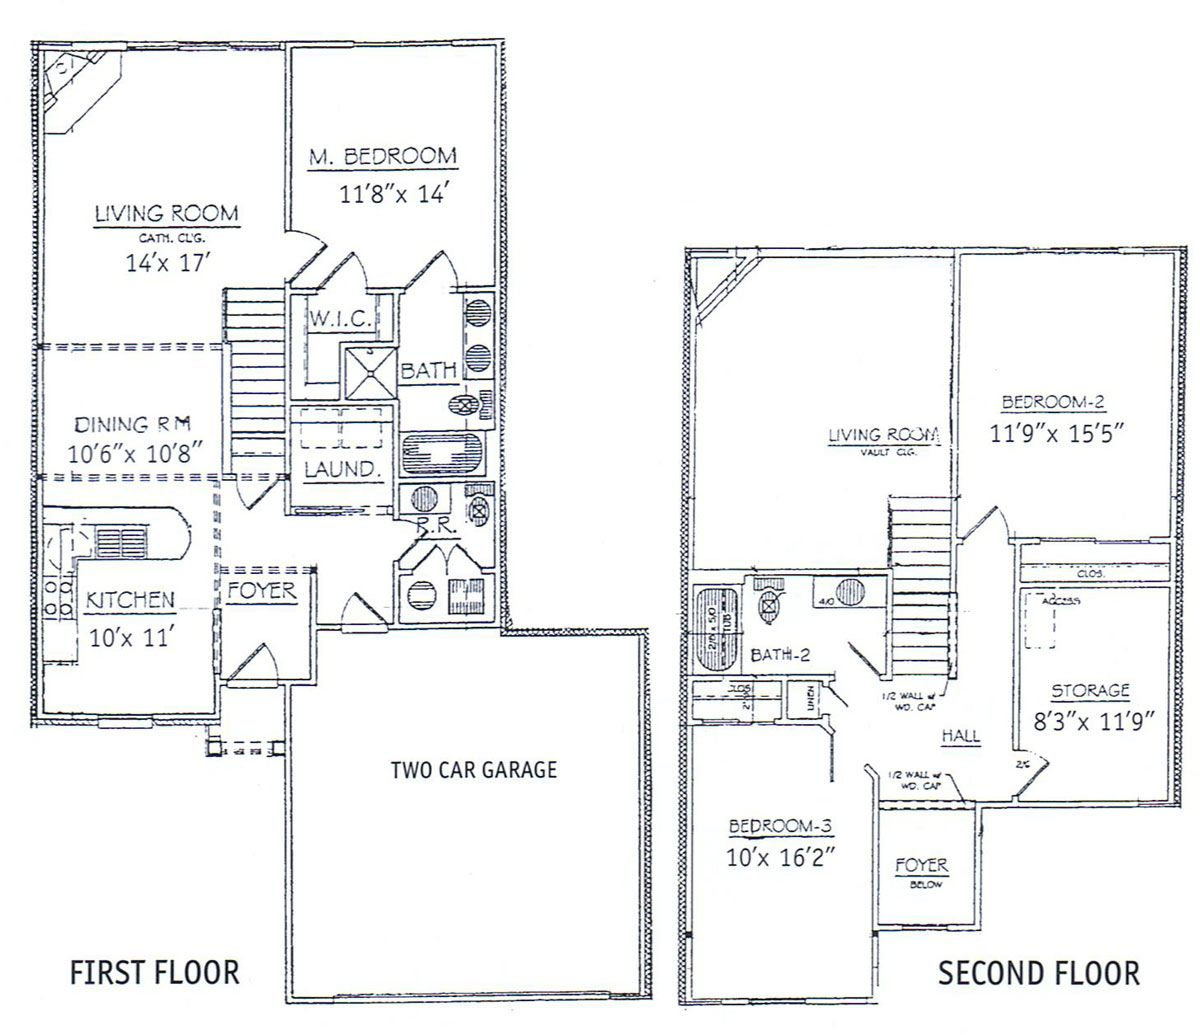 3 bedrooms floor plans 2 story bdrm basement the two for 2 bedroom house plans with garage and basement